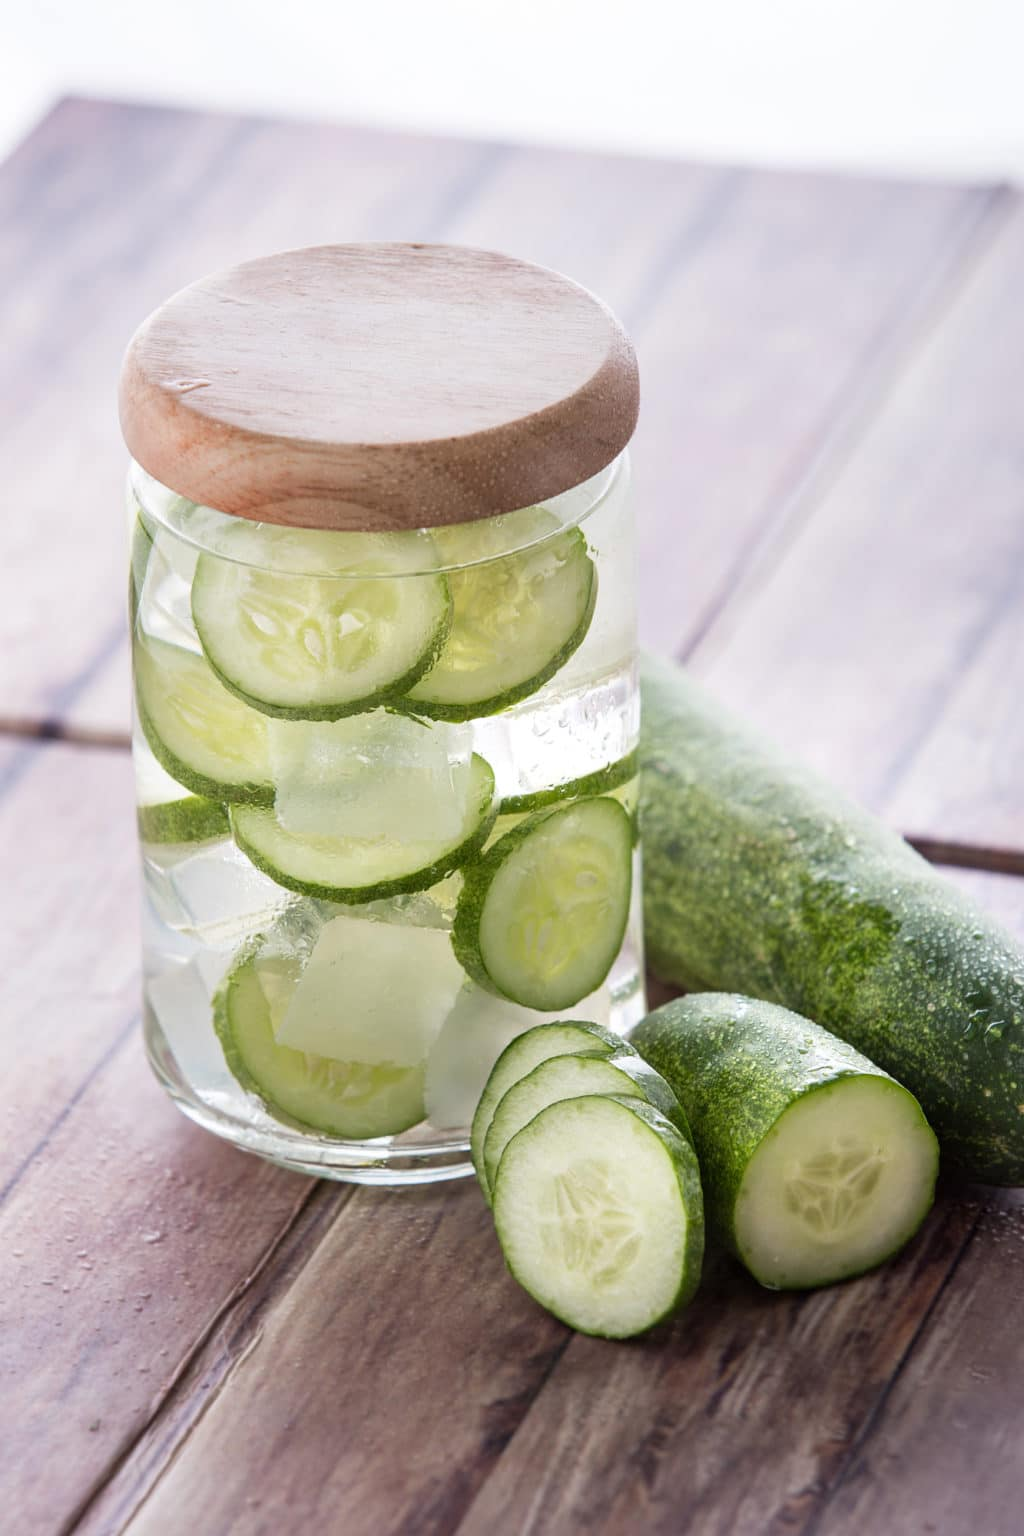 Infused cucumber water is a delicious and healthy way to stay hydrated! Learn why cucumber is so amazing, plus several different flavor options.